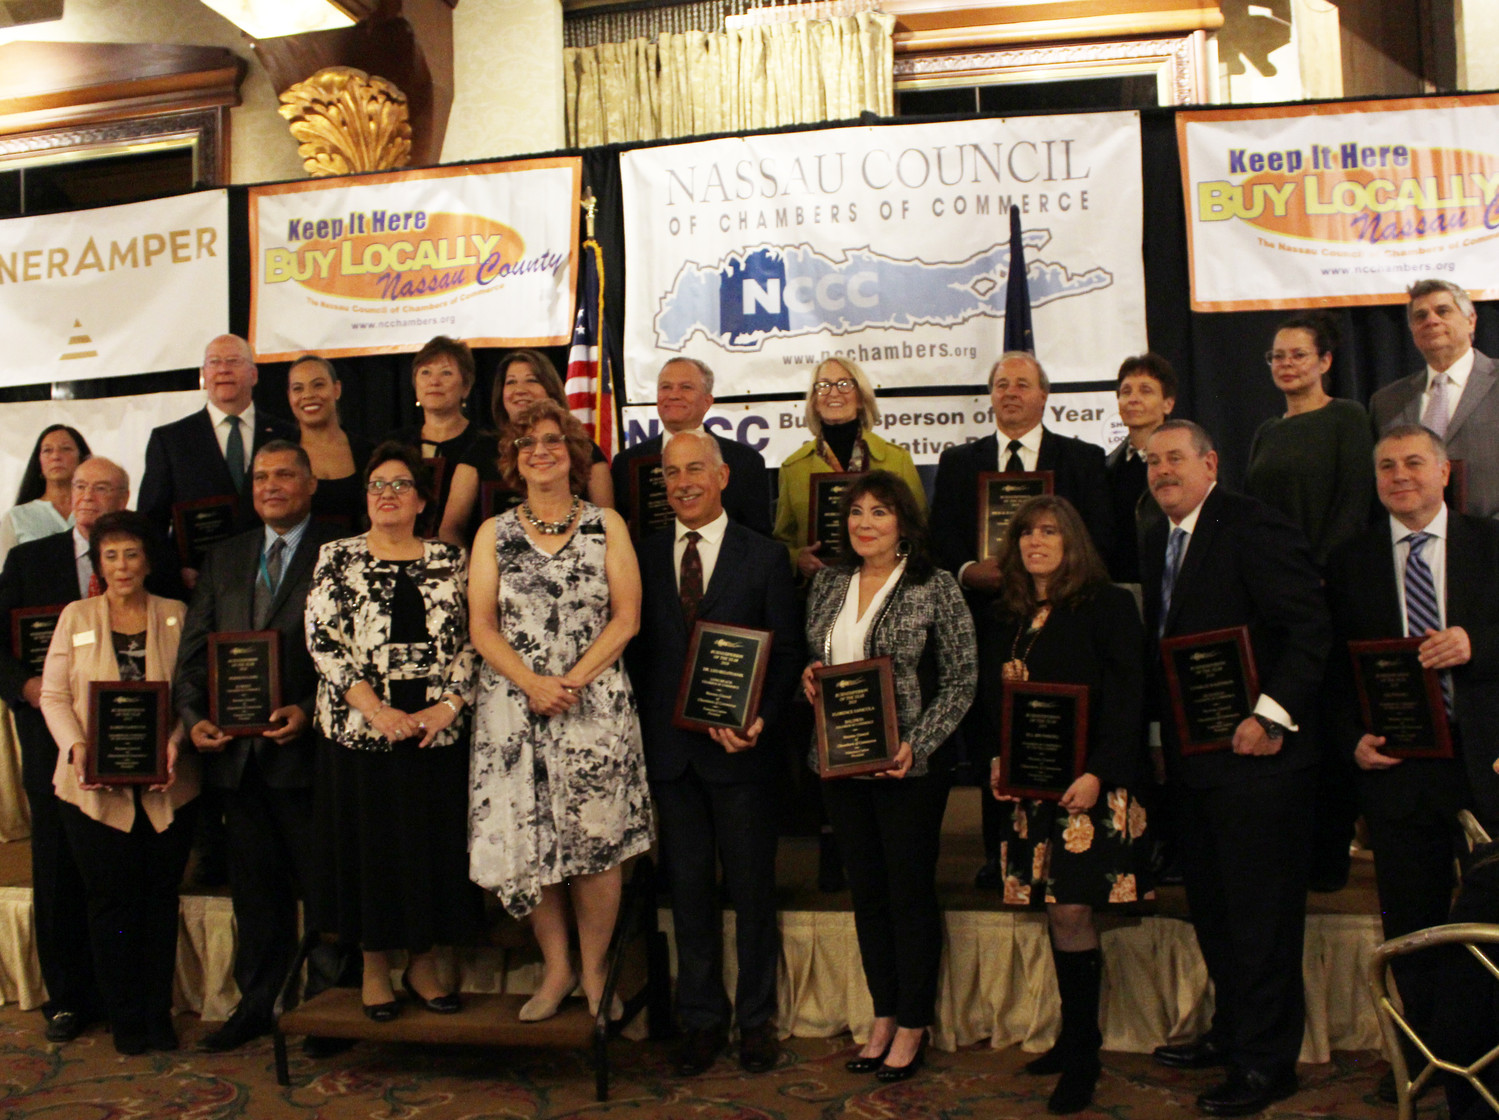 Nassau county Business leaders — including Rosemary Basmajian, fifth from left in top row — were honored on Oct. 19 at the Crest Hollow Country Club in Westbury.